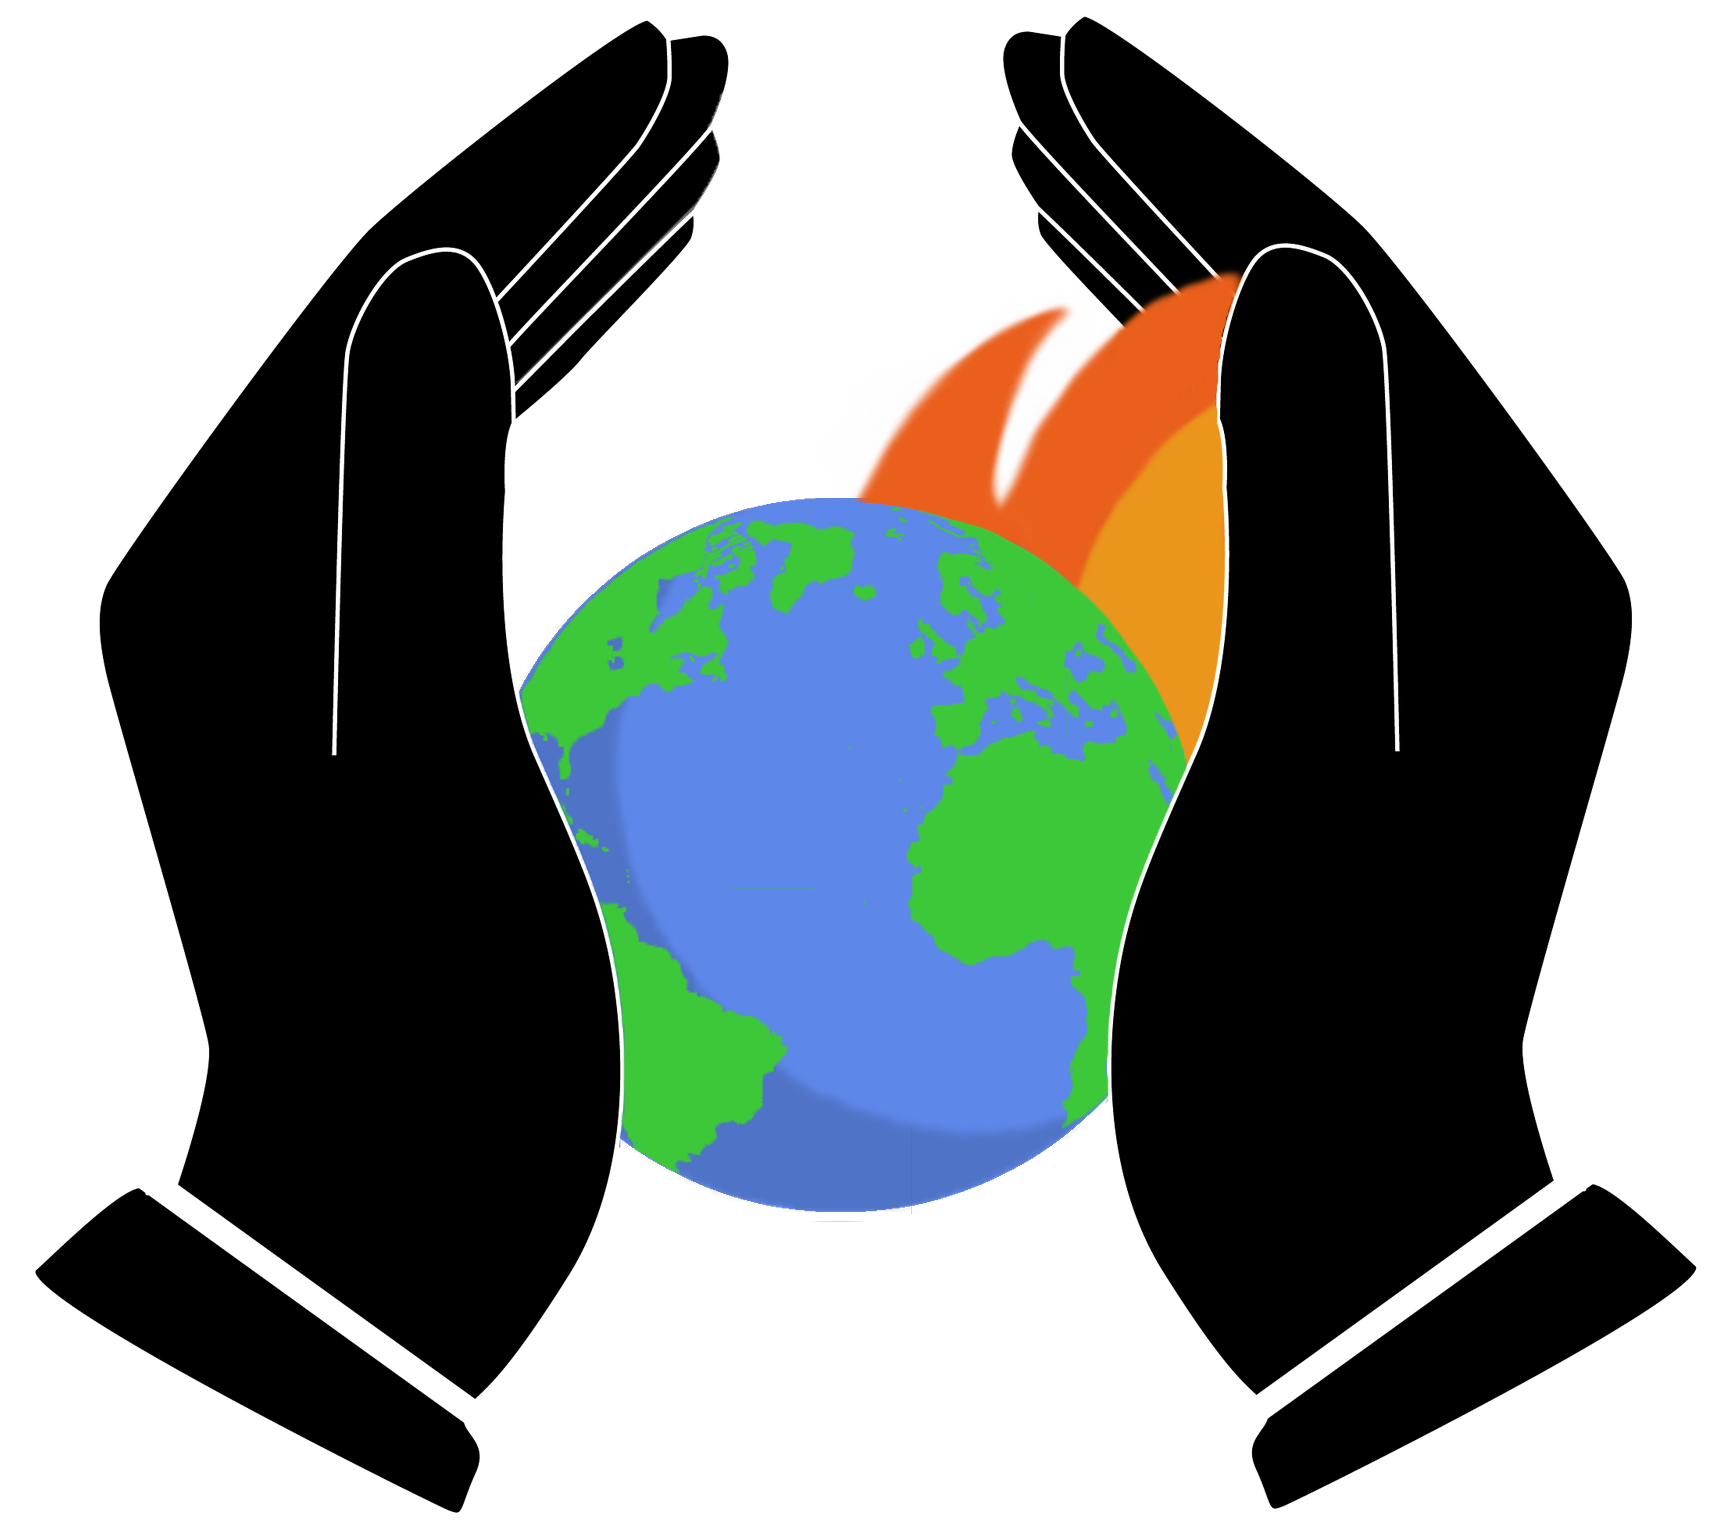 graphic of hands holding planet earth with flames